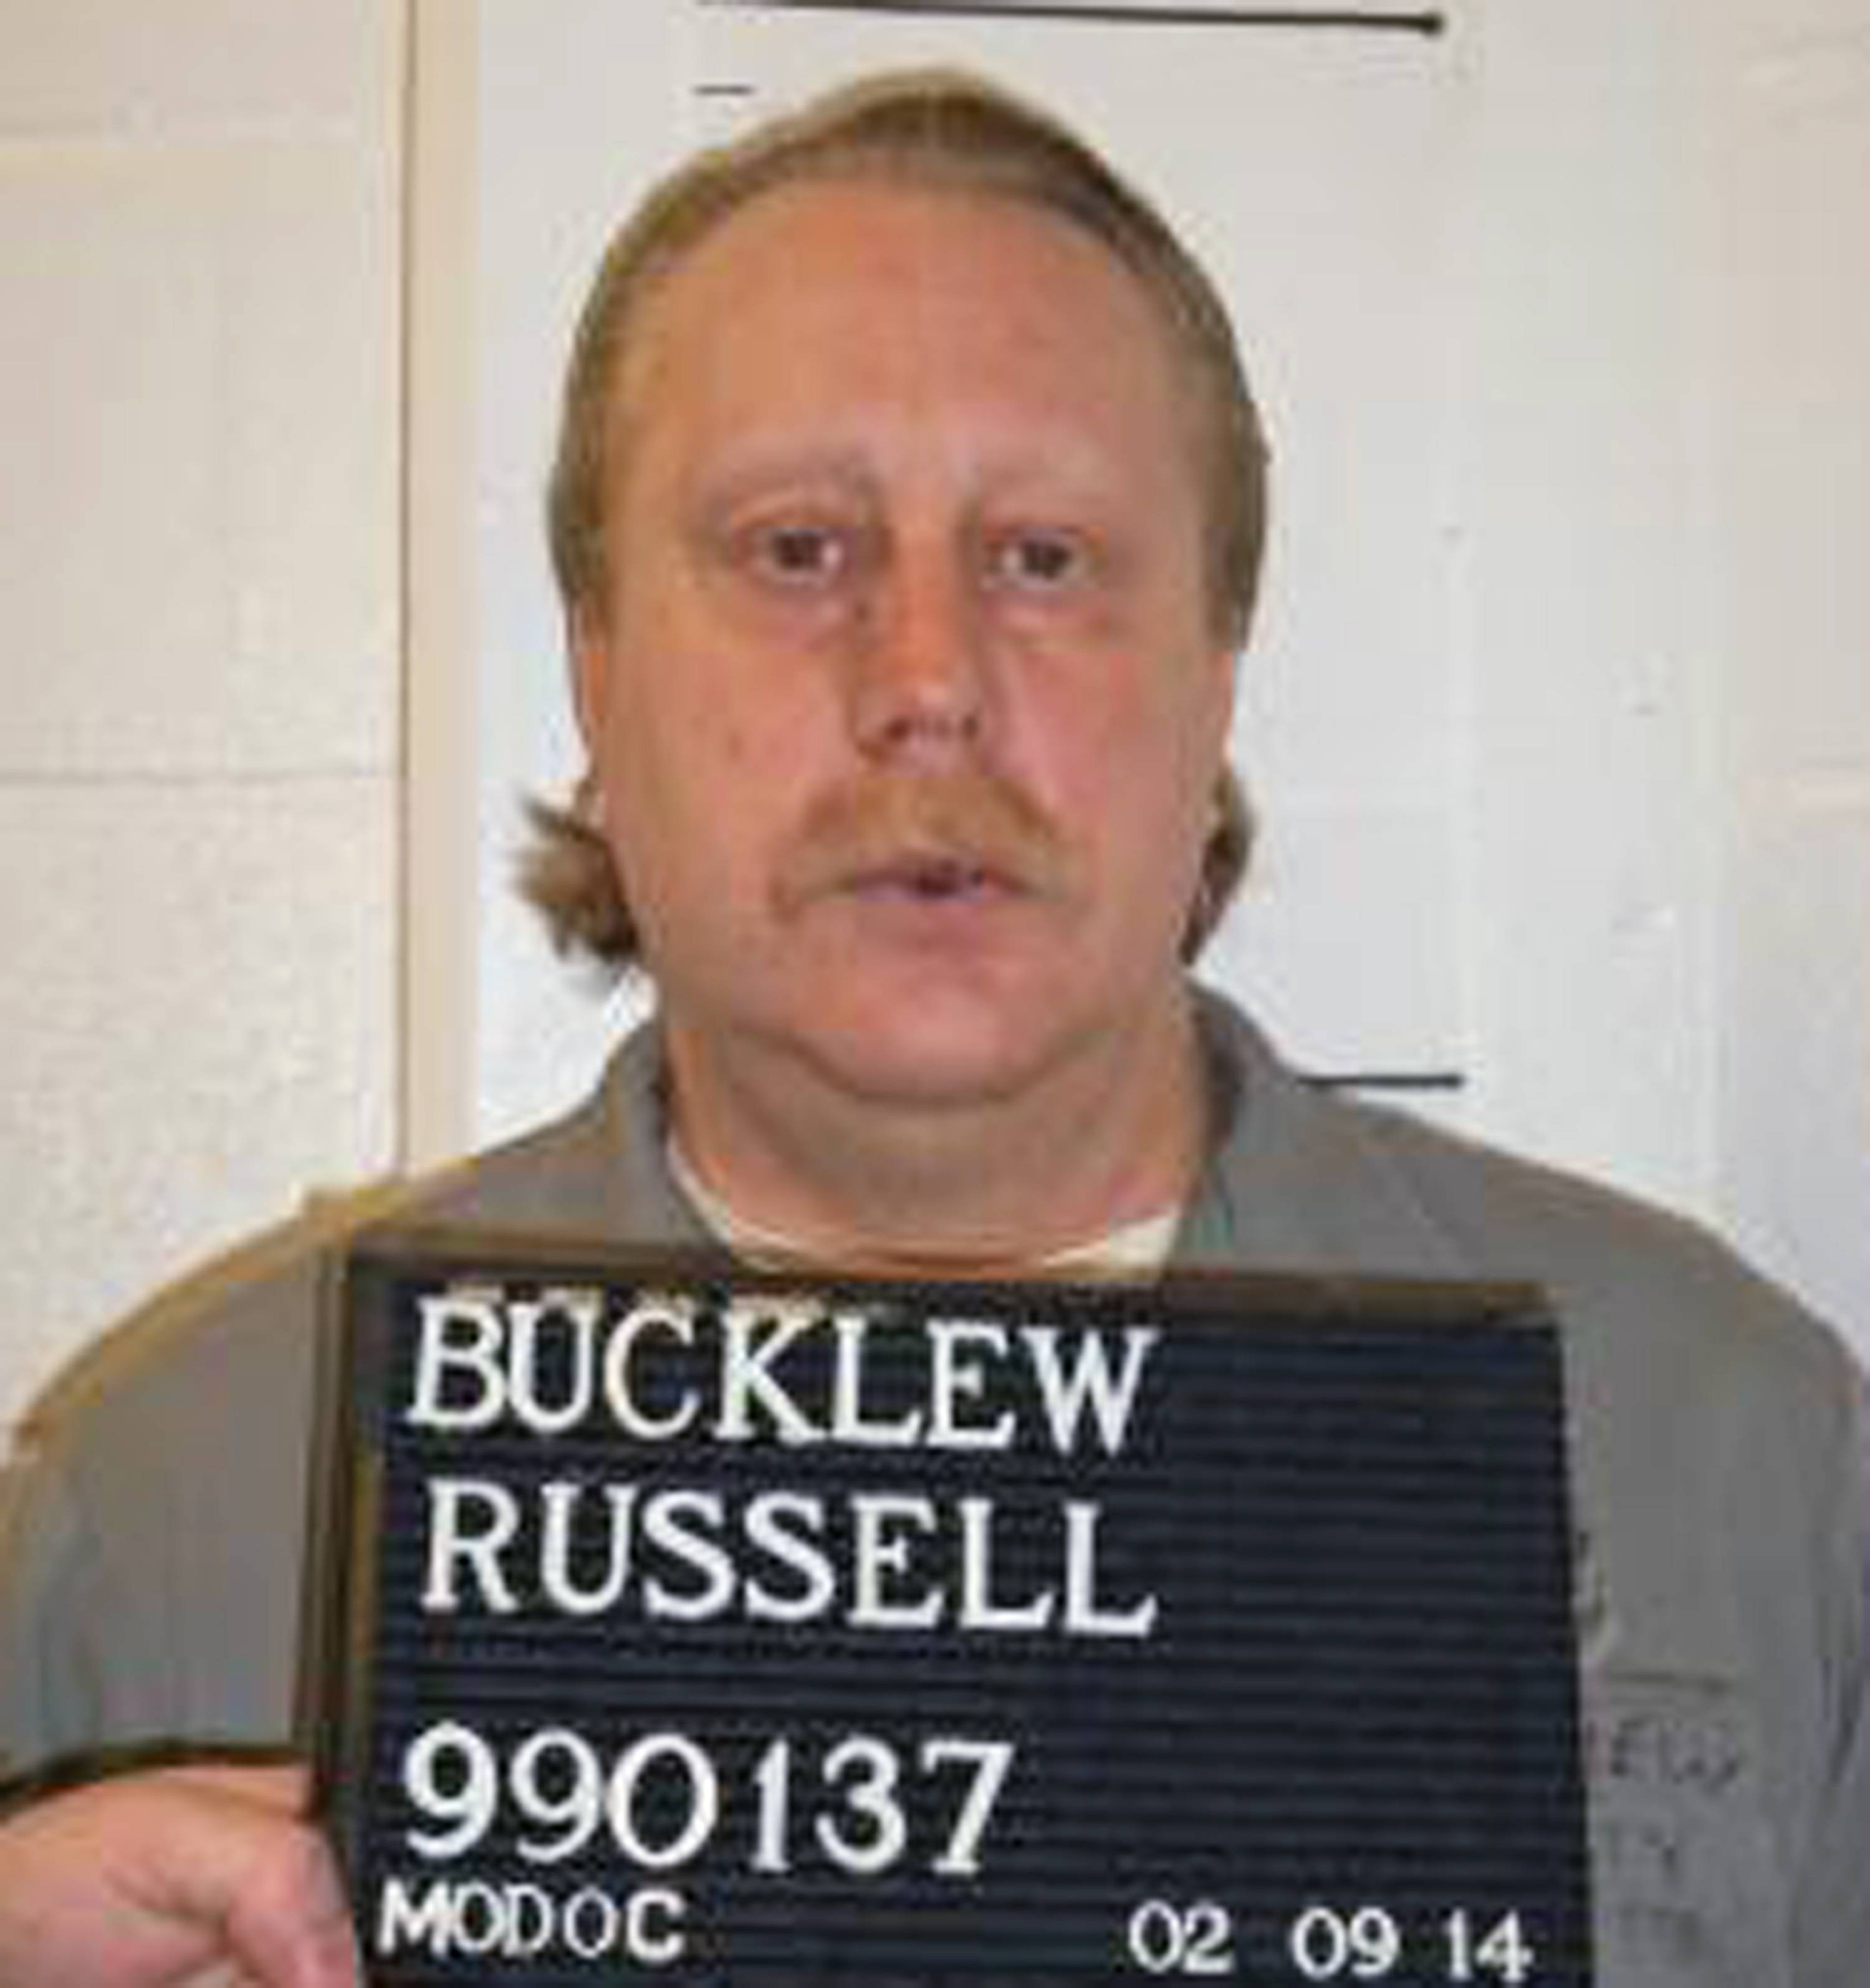 Attorneys for condemned Missouri inmate Russell Bucklew remain hopeful that a court will halt his execution, even if the governor has shown little inclination to do so himself.